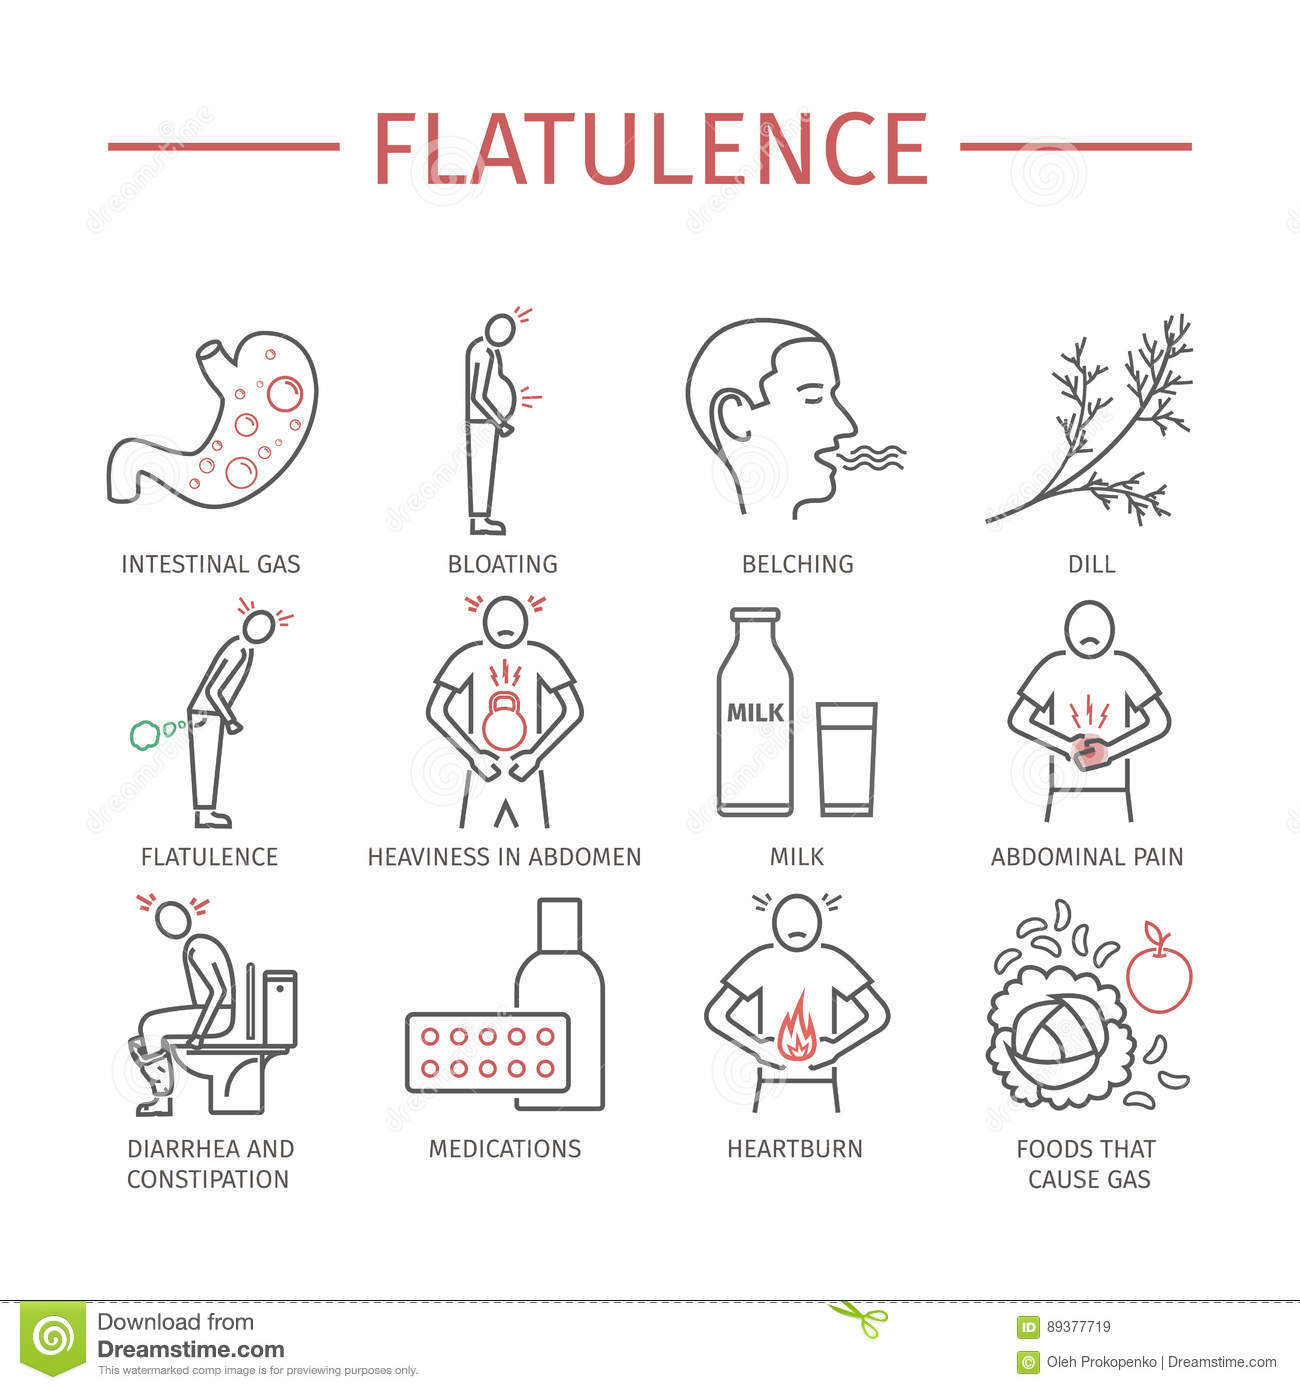 Flatulence: Symptoms and Treatment 34